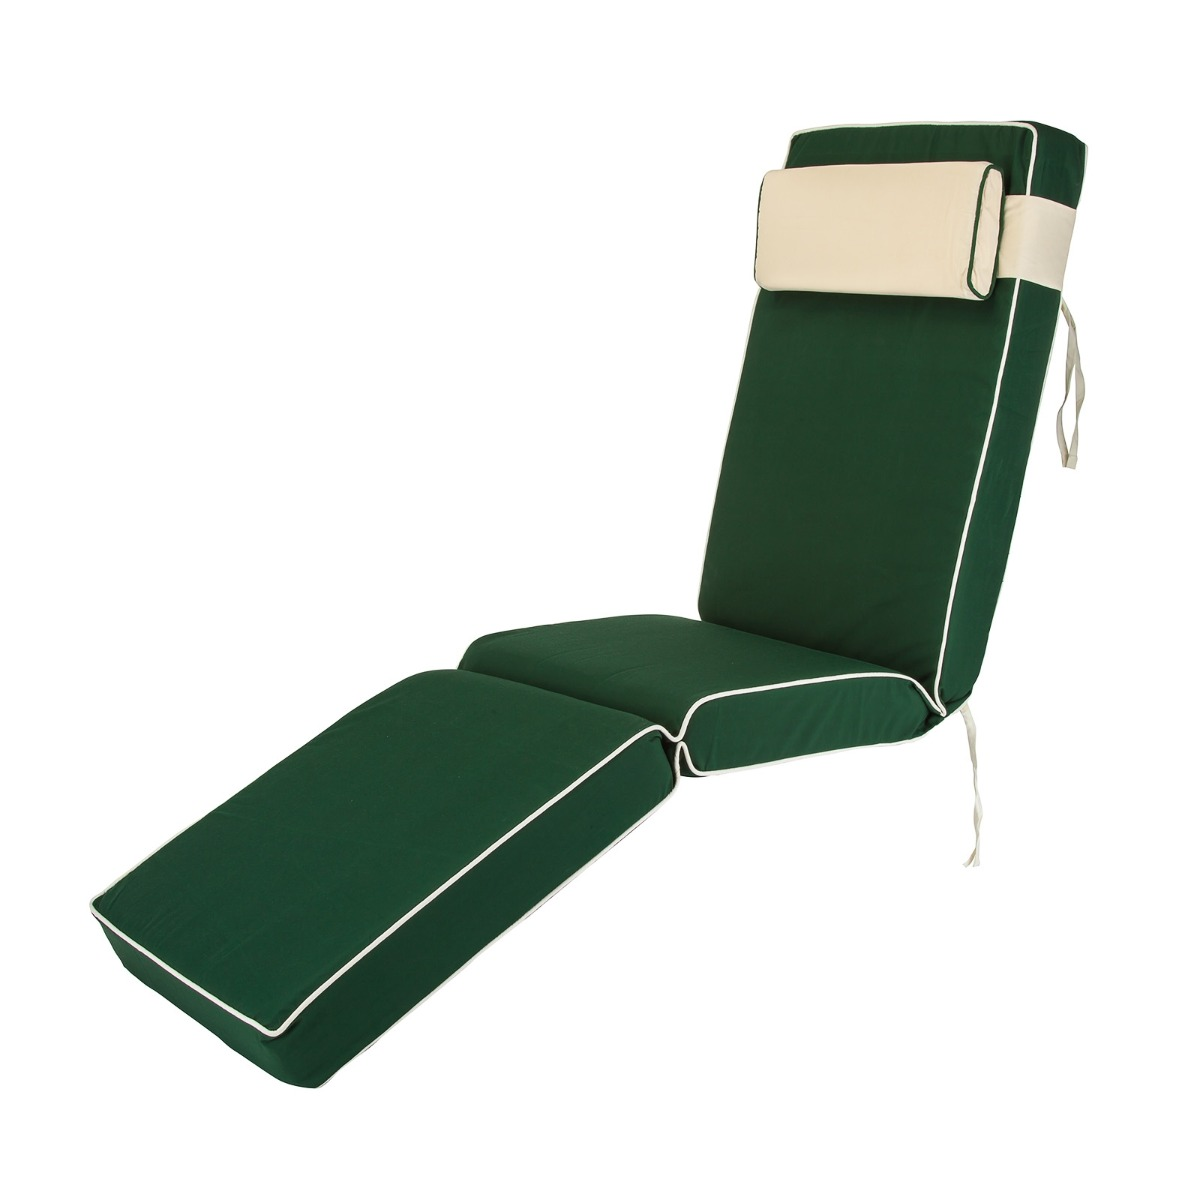 Luxury Green Sun Lounger